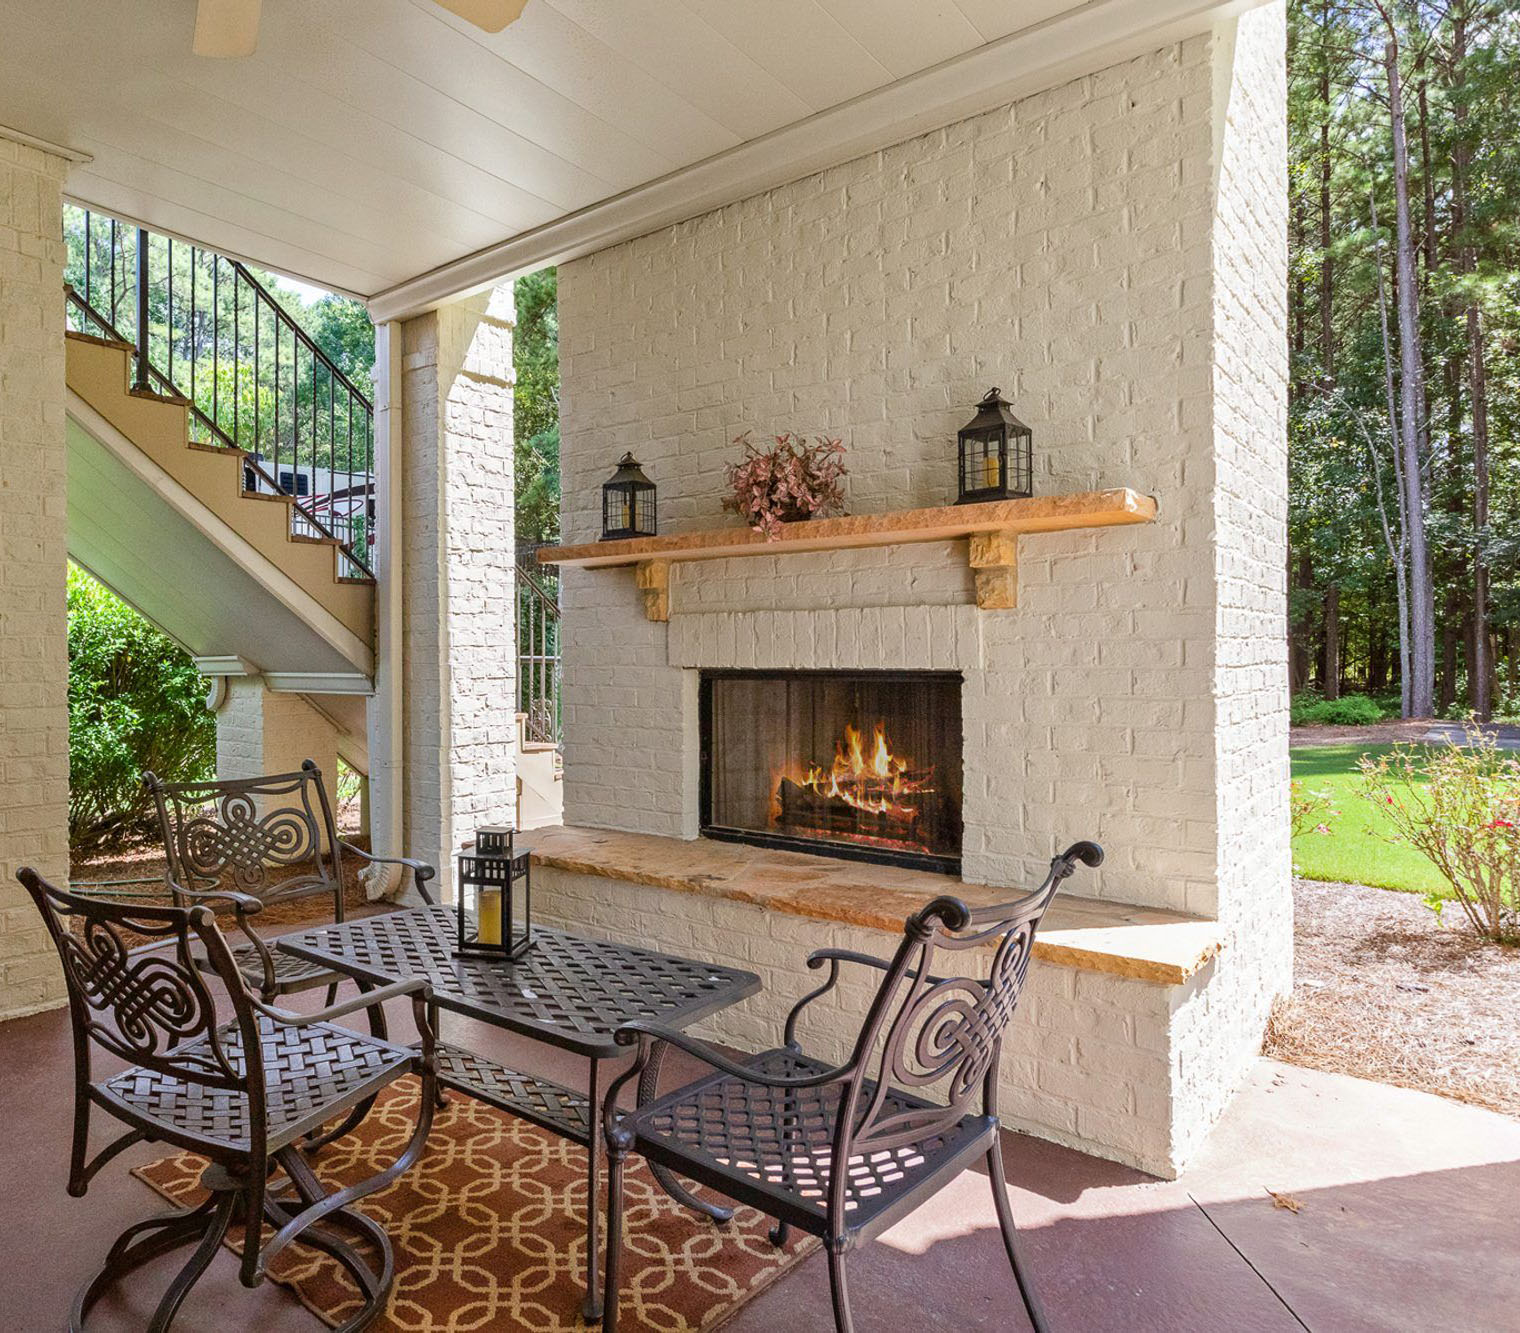 Patio fireplace built with red brick painted white. Wood burning firebox with a tan stone hearth and matching mantle.